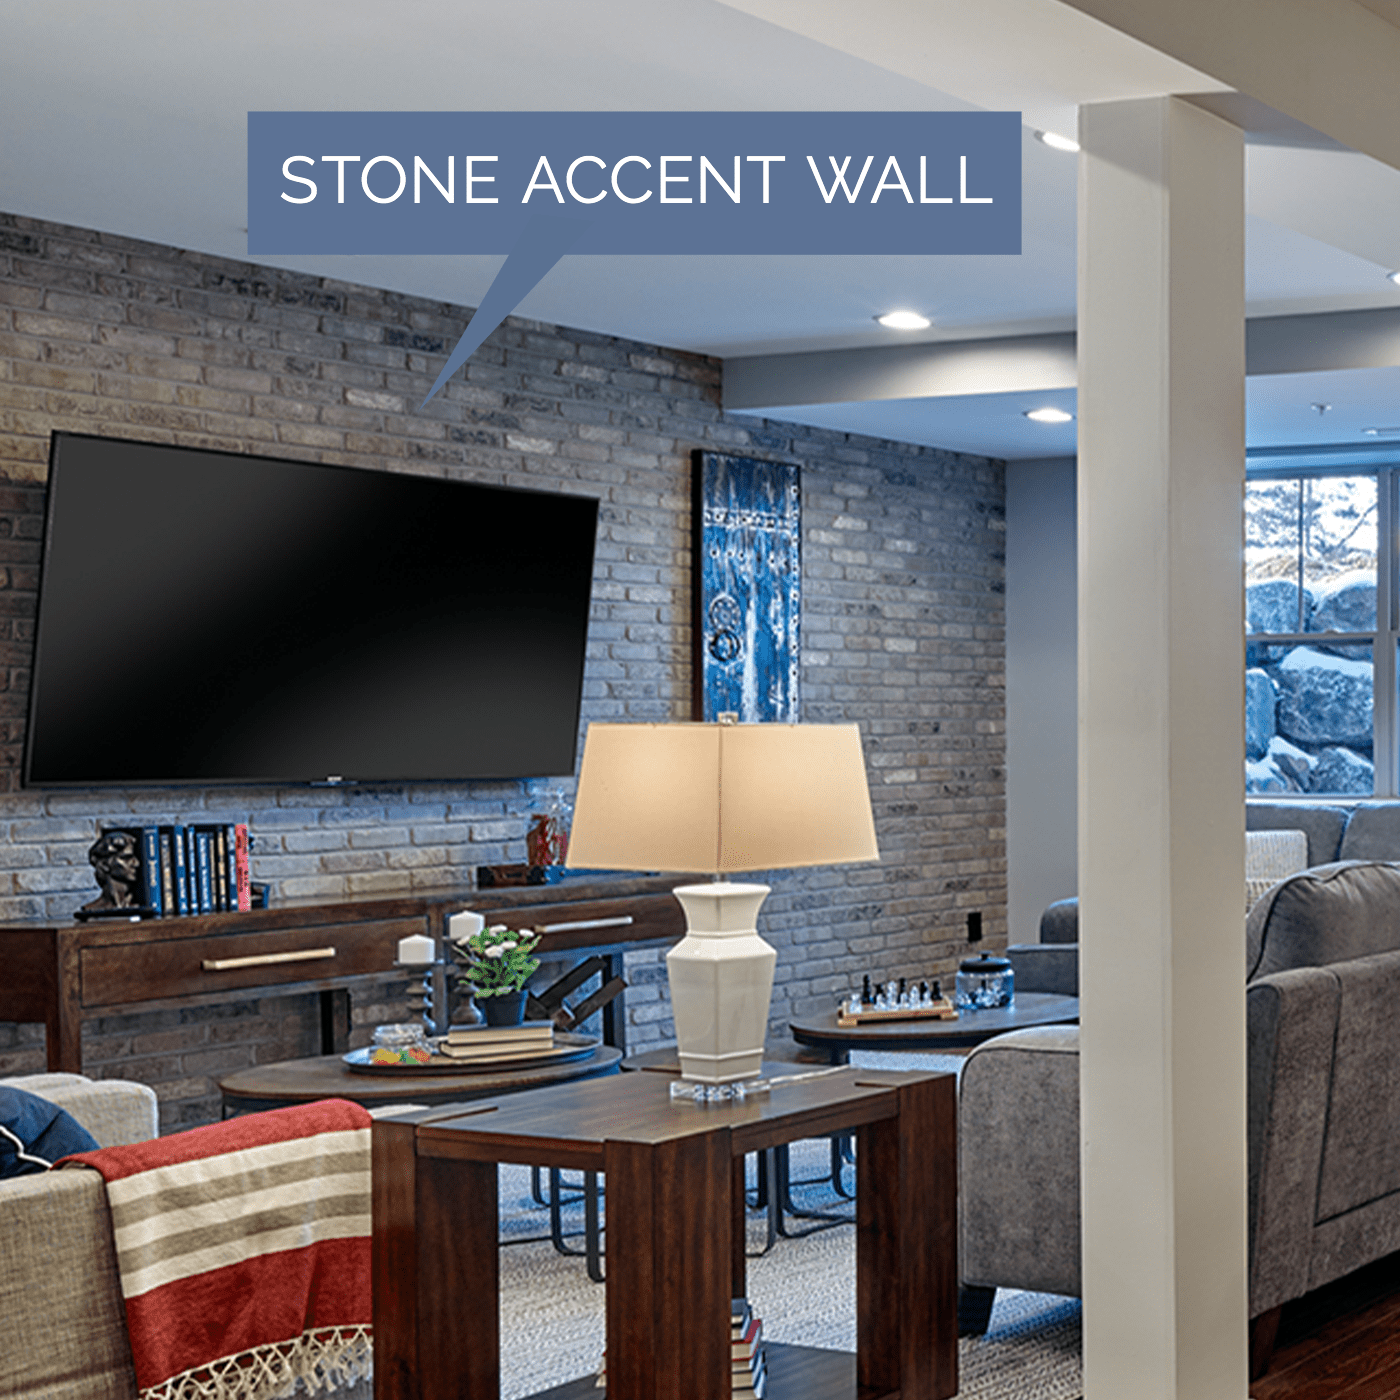 Image of a stone accent wall